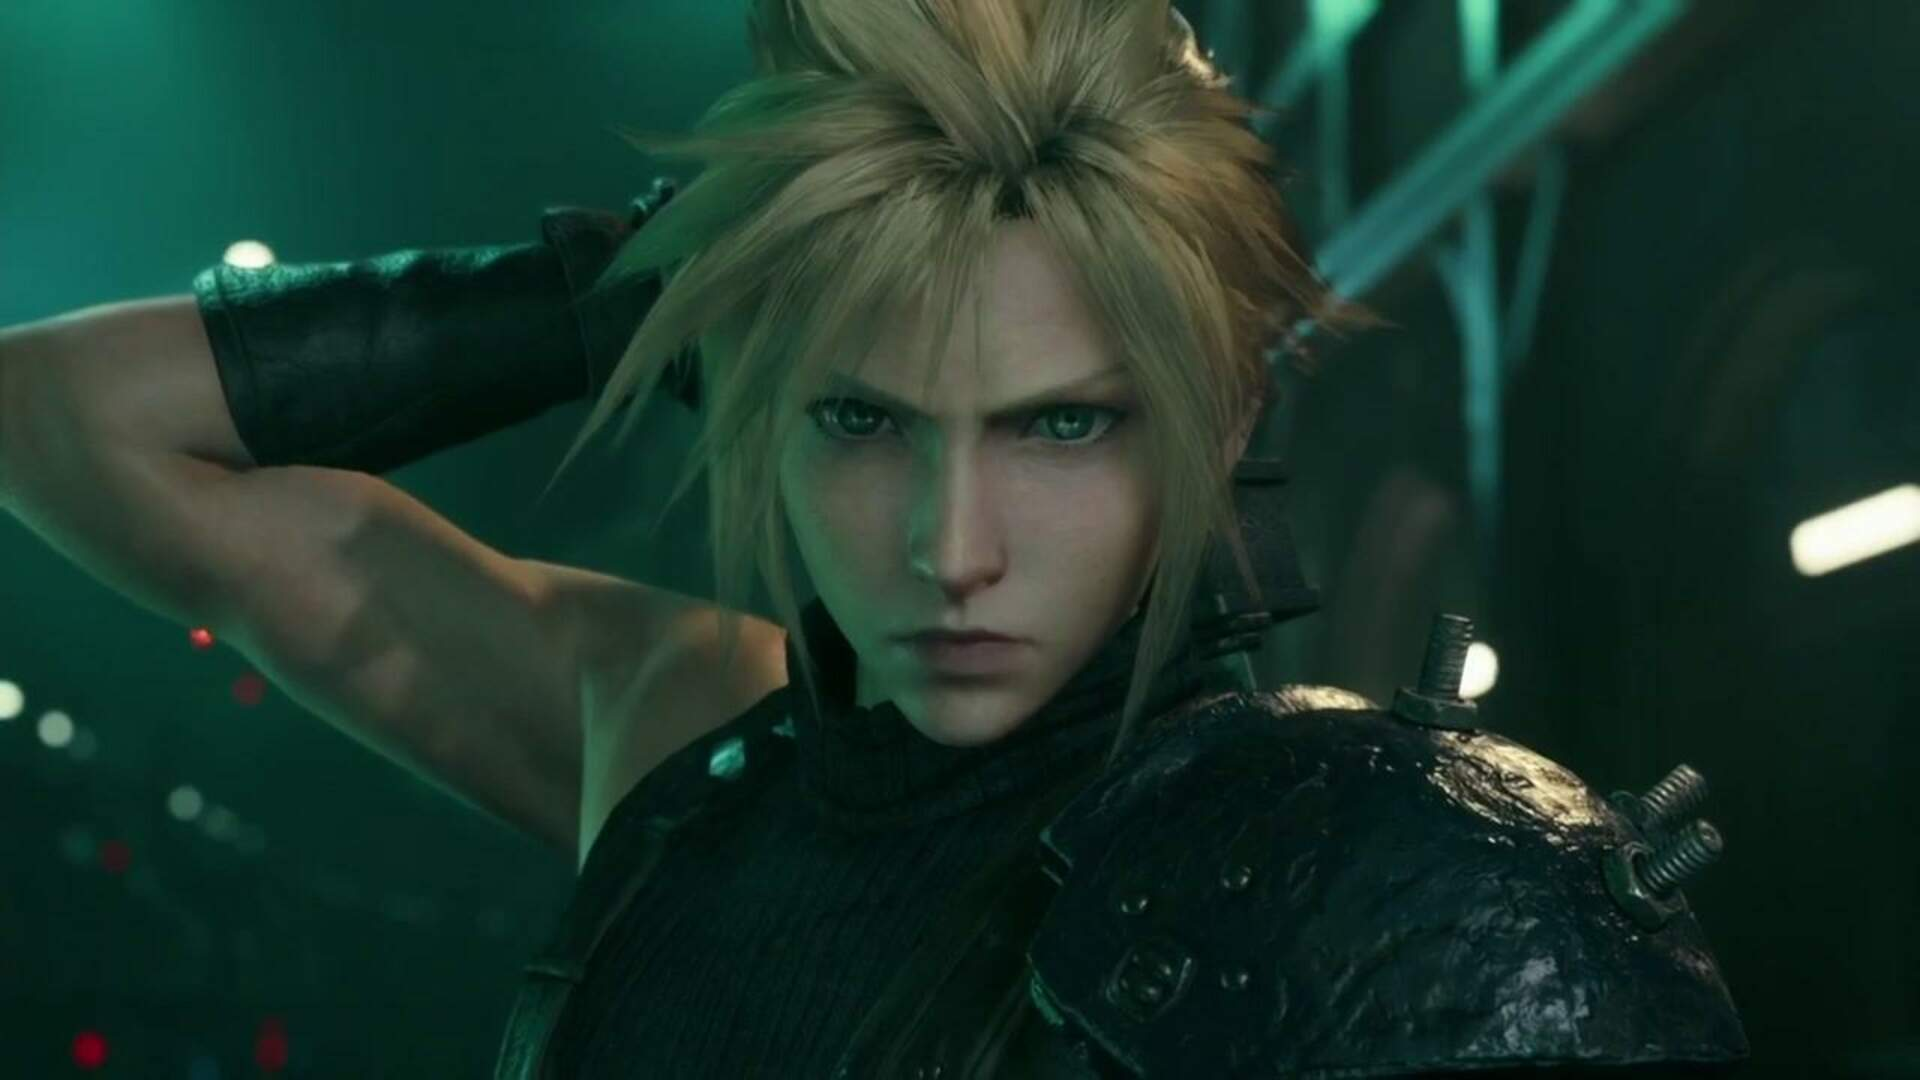 Final Fantasy 7 Remake Replaces Longtime Cloud Strife Voice Actor